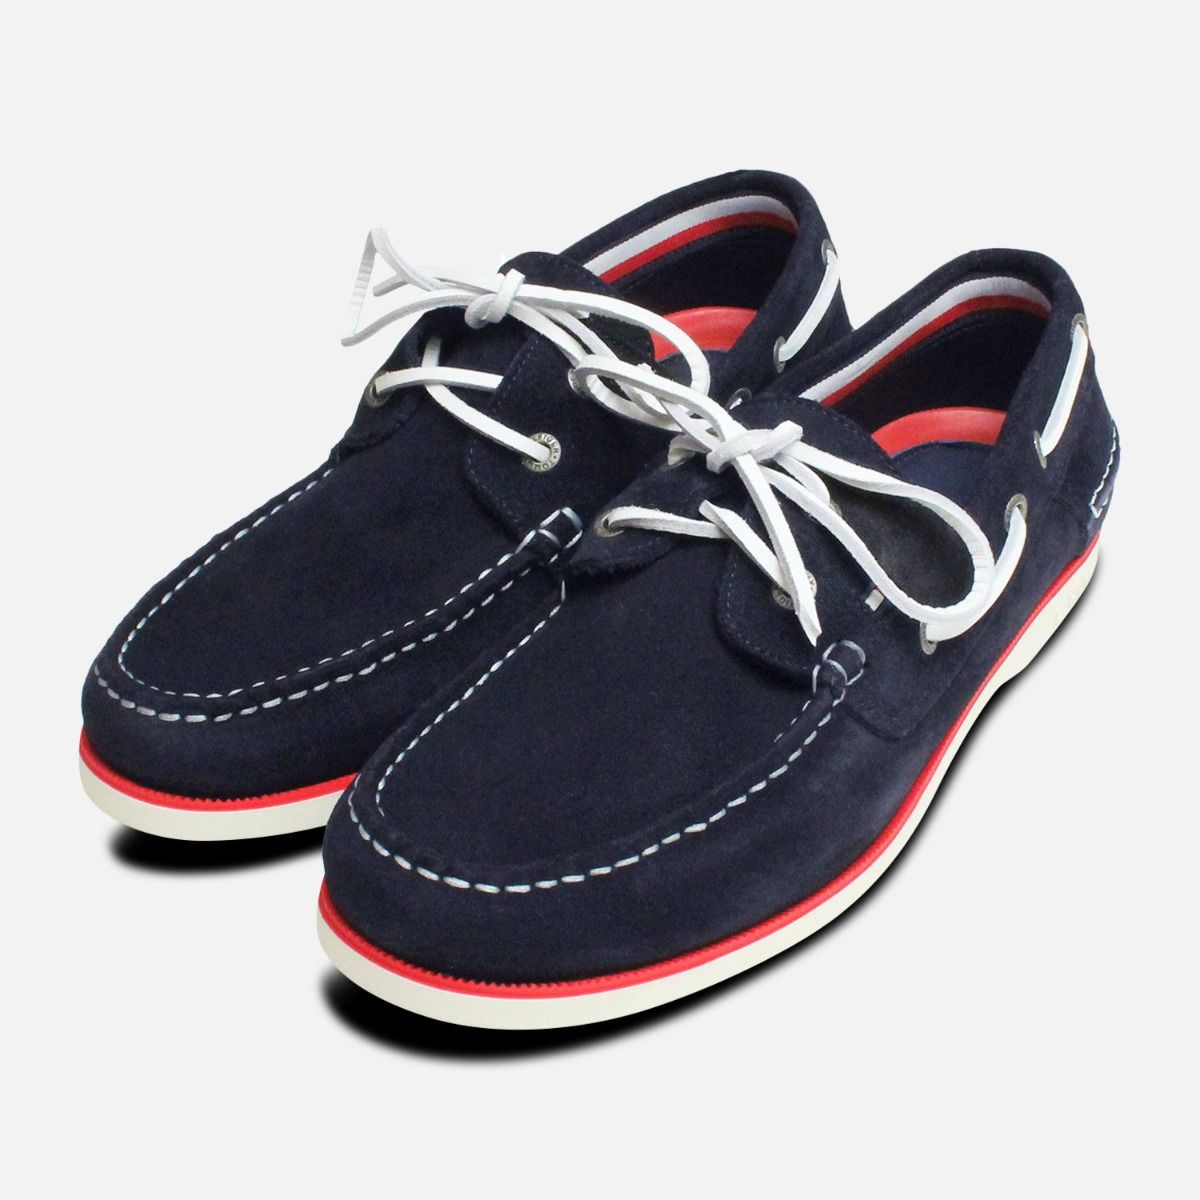 3910aa6bb Tommy Hilfiger Navy Blue Suede Mens Boat Shoes